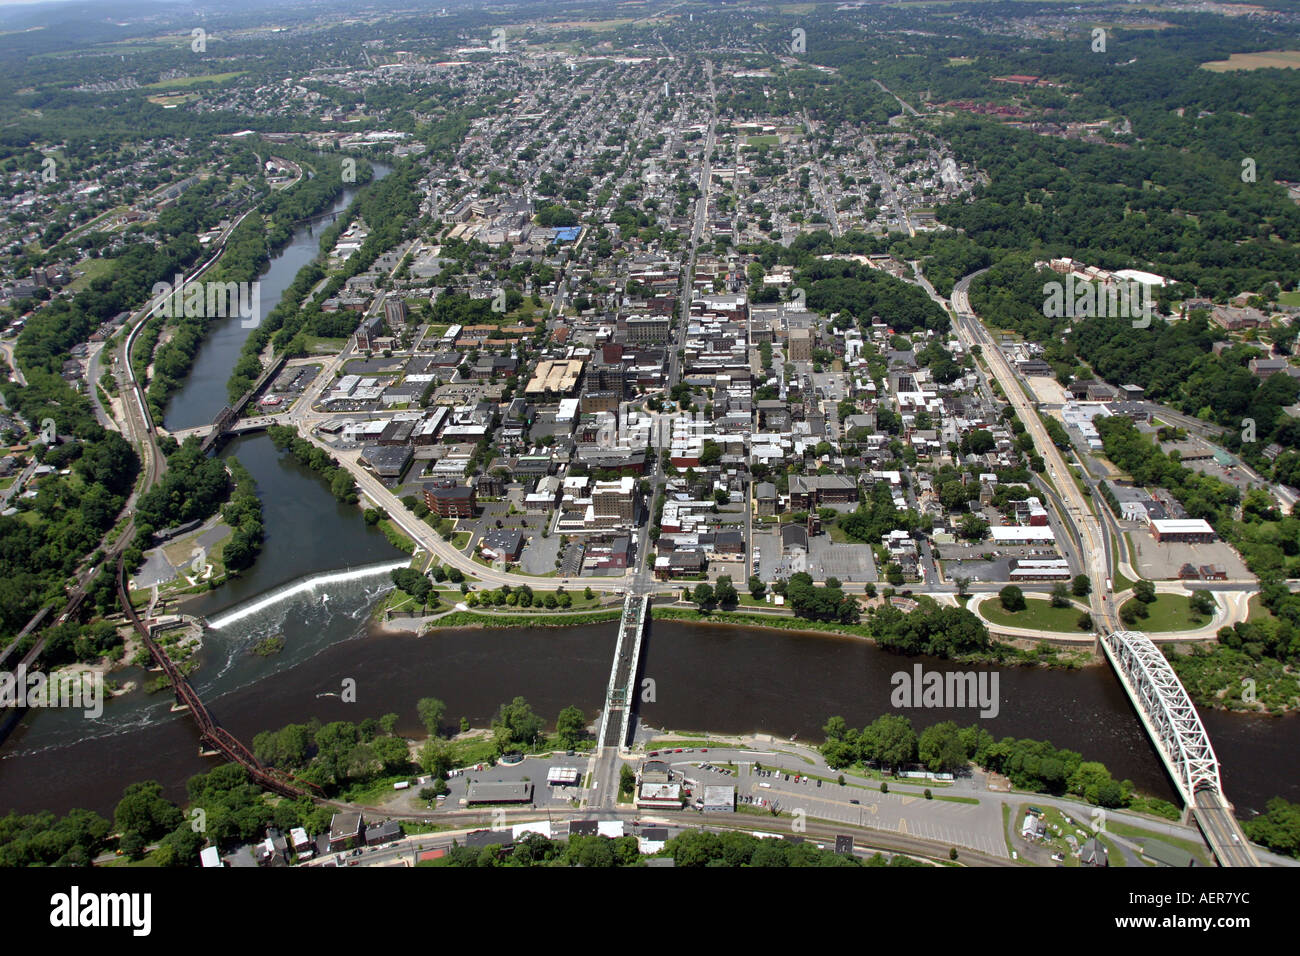 Aerial view of the Delaware River near Easton, Pennsylvania, and